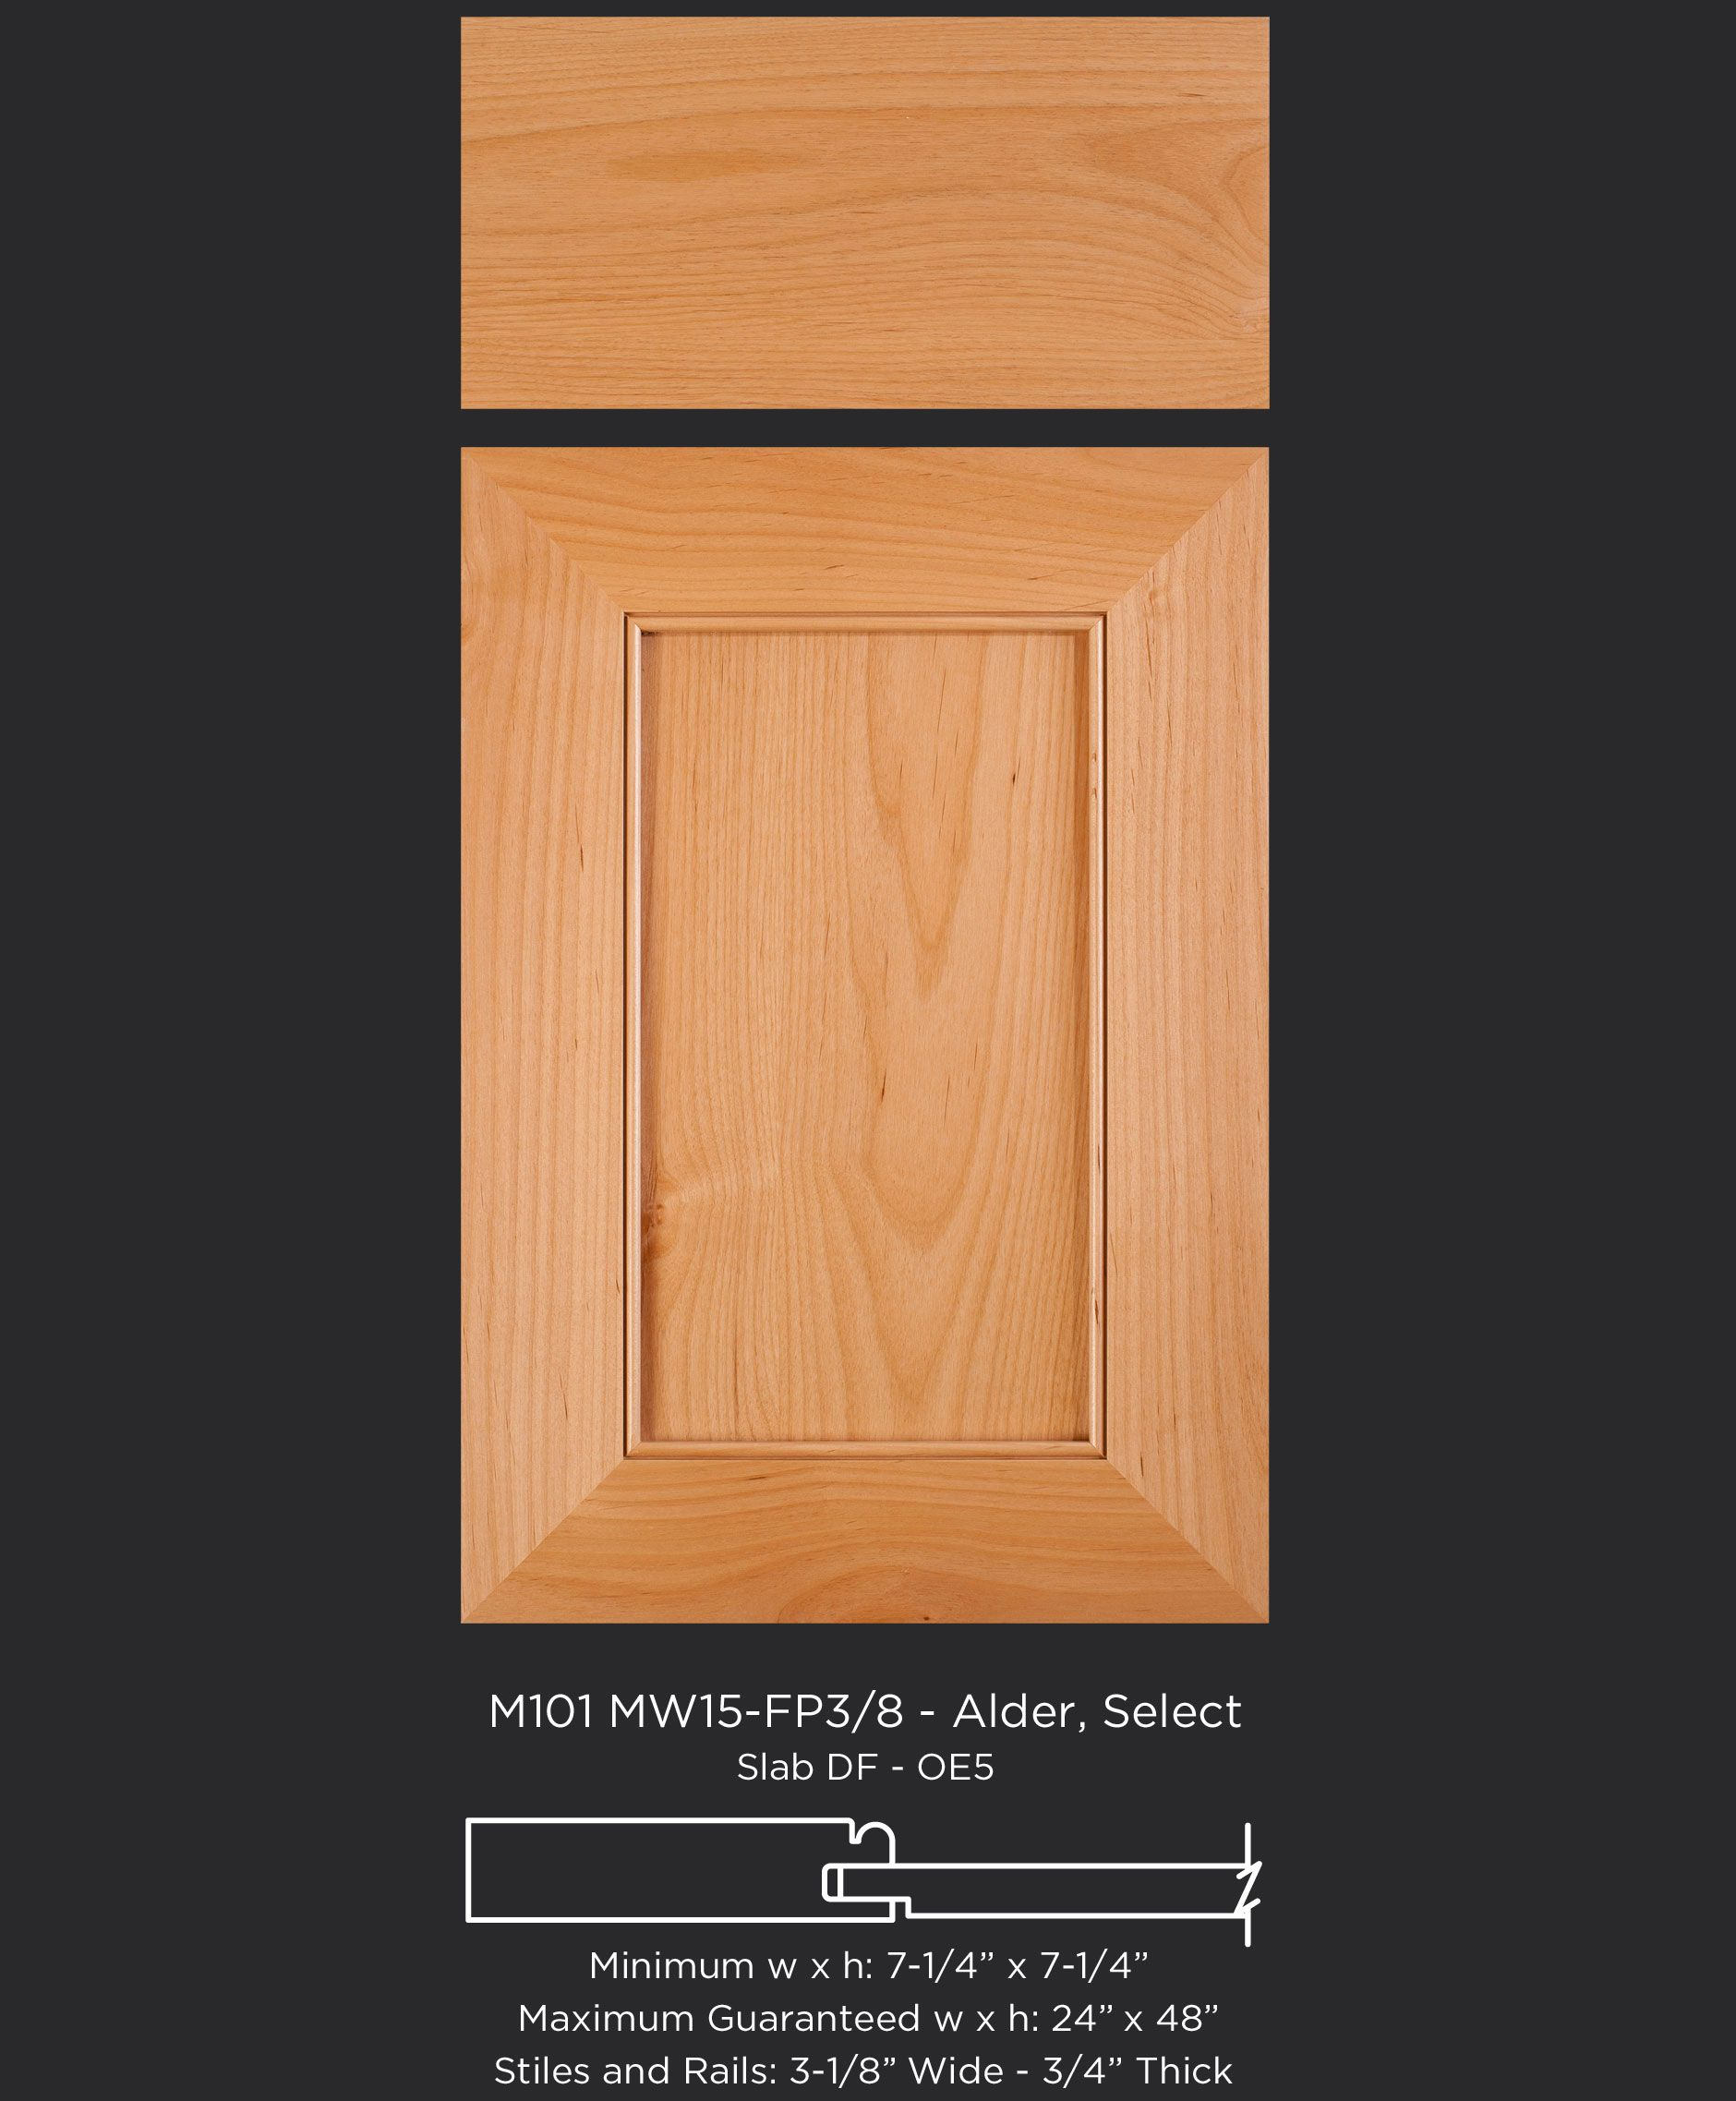 A Modern Twist On The Shaker Door 3 1 8 Wide Frame And Beaded Inside Edge On This Mitered Cabinet Door In Alder By Taylorcraft Cabinet Door Company M101 Mw15